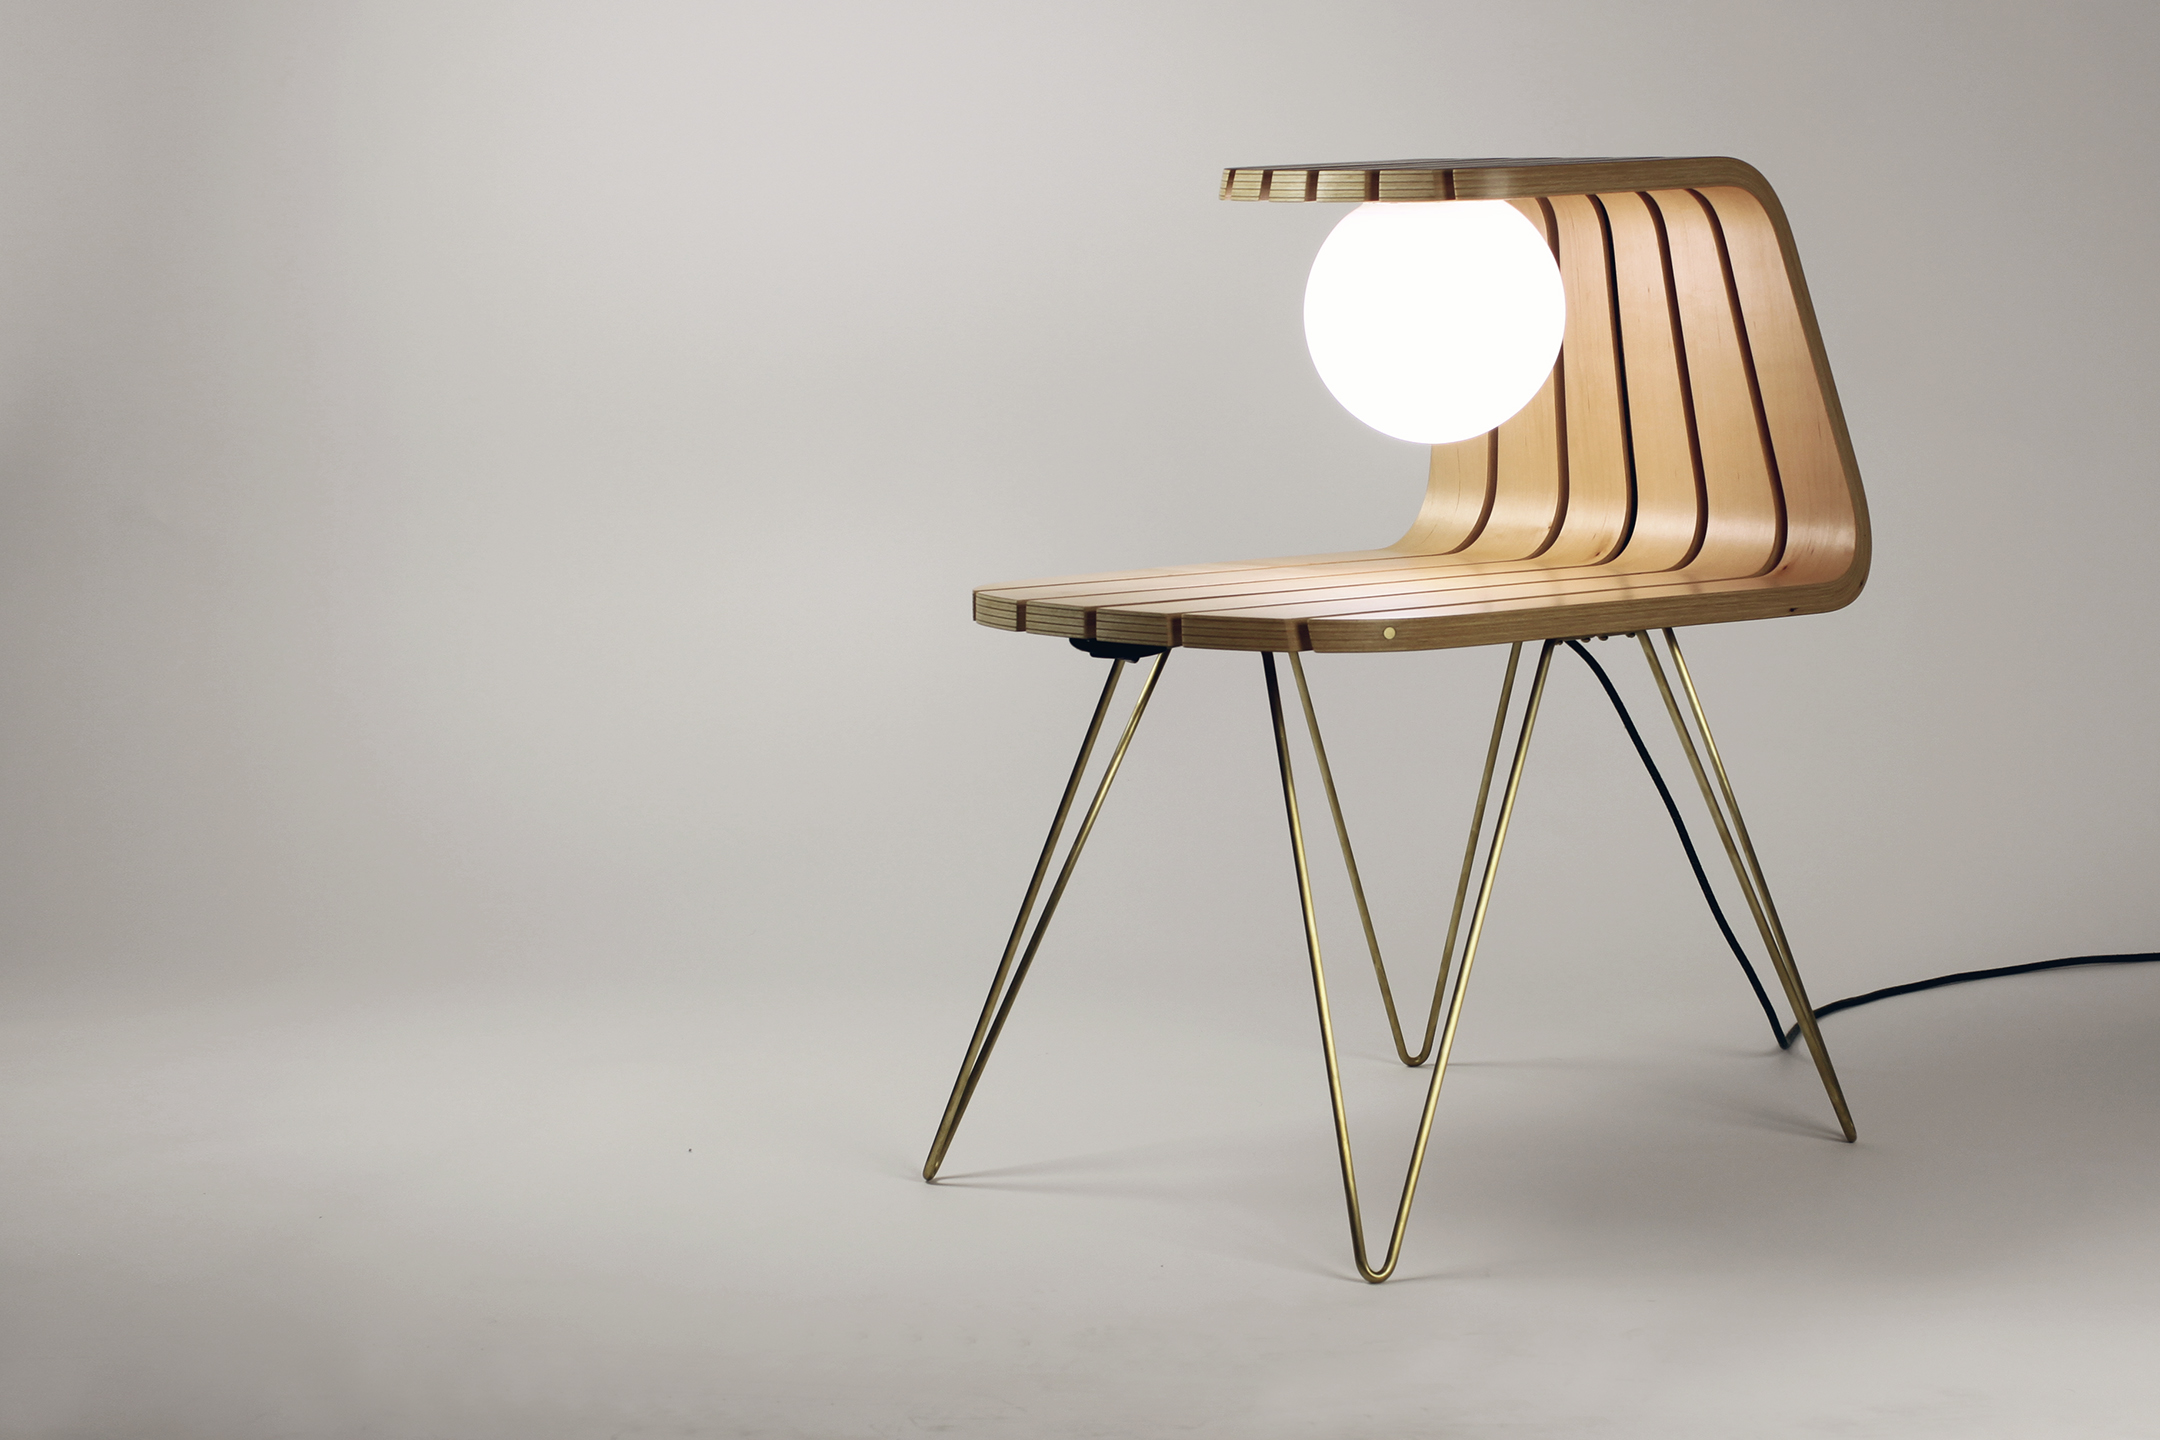 BENT FLEXIPLY W/ WALNUT EXTERIOR AND MAPLE INTERIOR; glass globe; solid brass LEGS and hardware; smart bulb